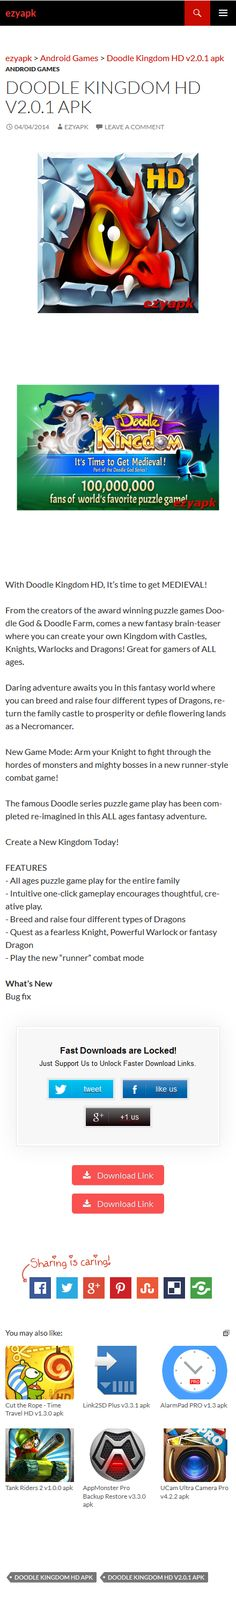 Android Games Doodle Kingdom HD v2.0.1 apk - ezyapk With Doodle Kingdom HD, It's time to get MEDIEVAL! From the creators of the award winning puzzle games Doodle God & Doodle Farm, comes a new brain-teaser. http://www.ezyapk.com/android-games/doodle-kingdom-hd-v2-0-1-apk/